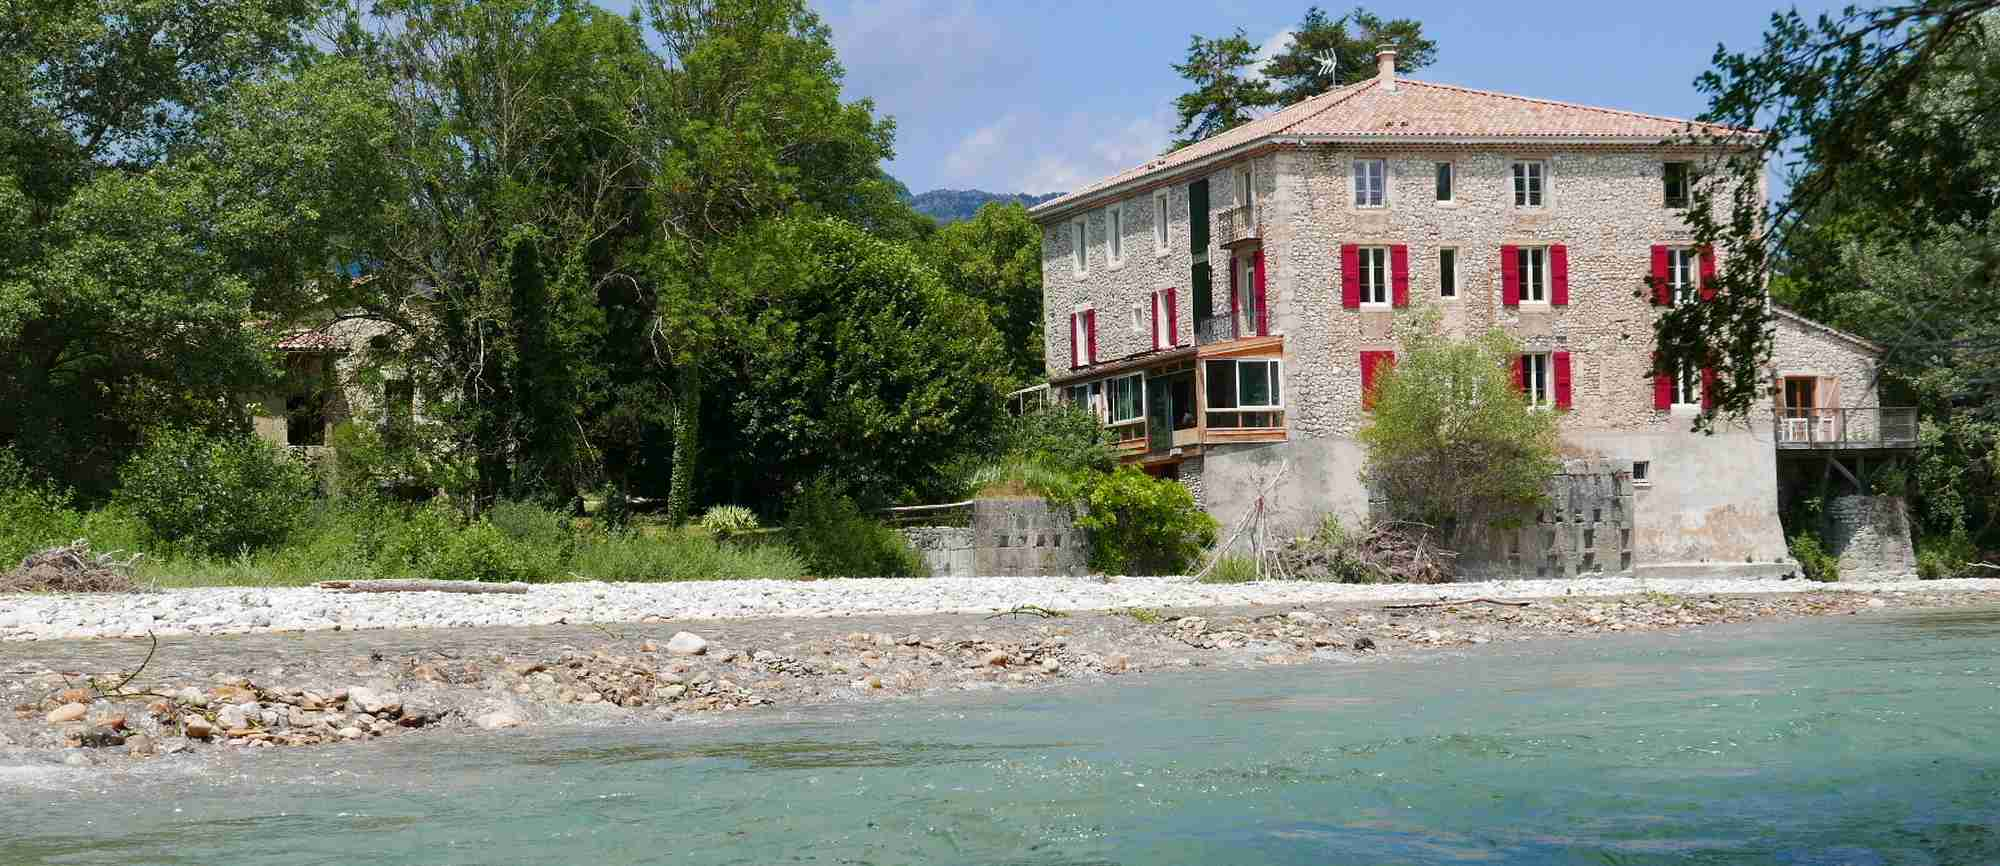 presentation gites and guest rooms of the Solaure mill